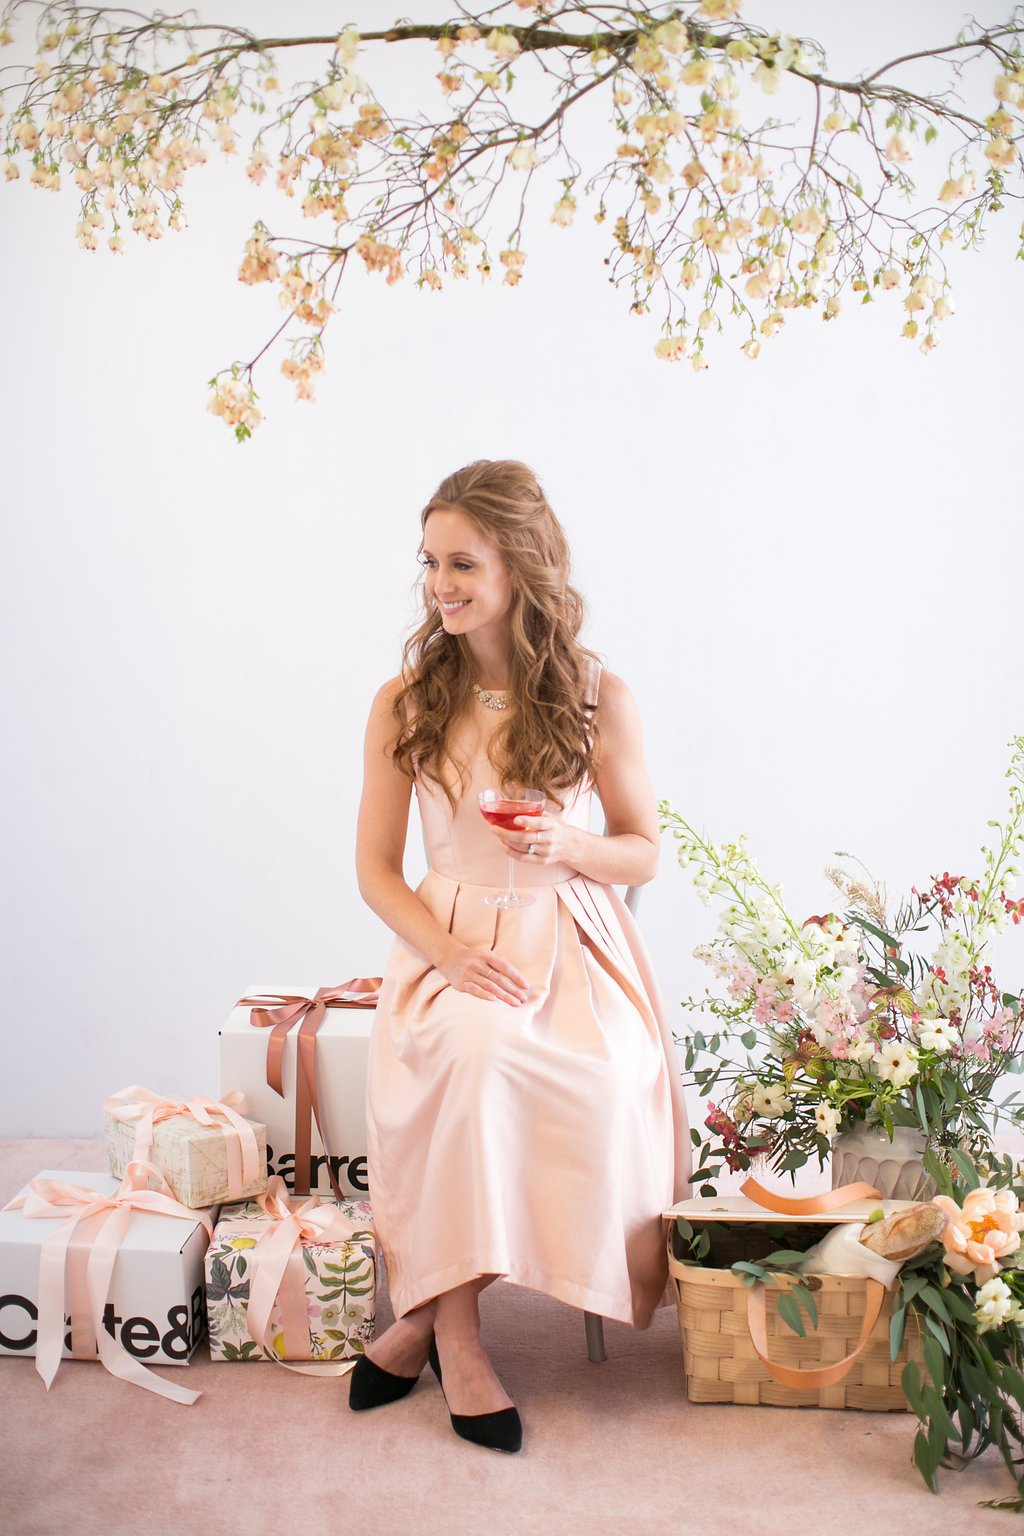 Bride sitting by Crate and Barrel boxes with pink cocktail at bridal shower